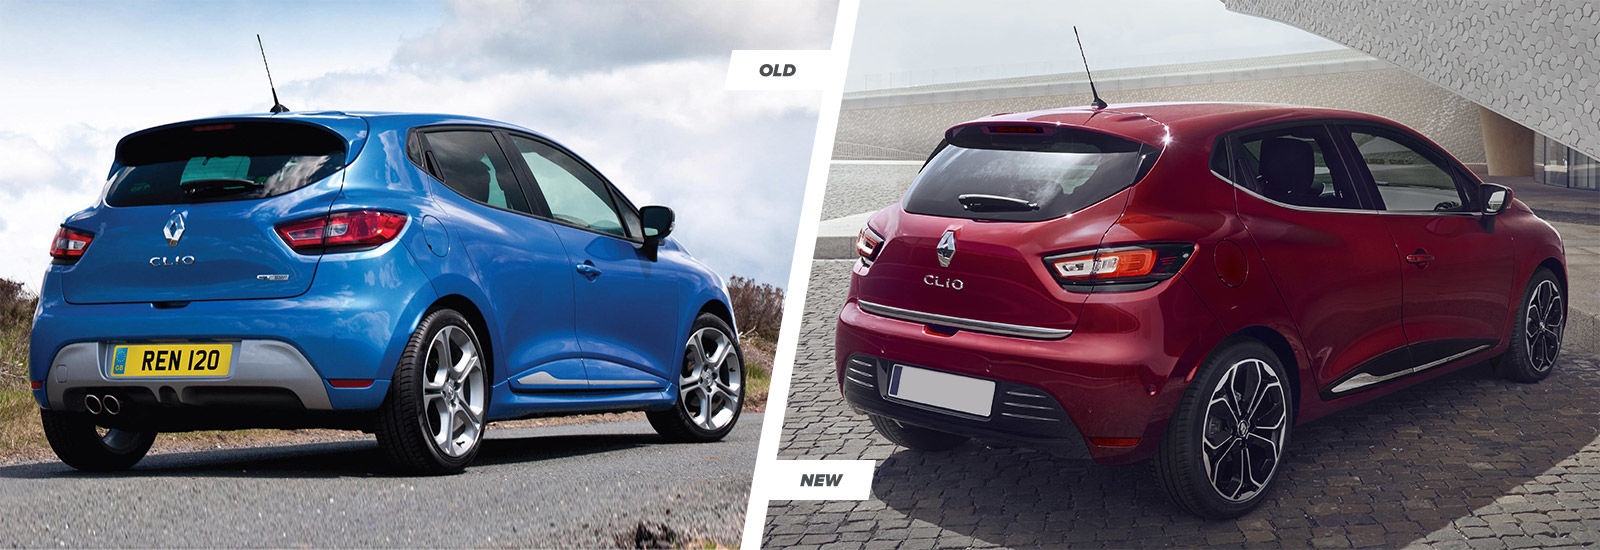 renault clio facelift old vs new compared carwow. Black Bedroom Furniture Sets. Home Design Ideas